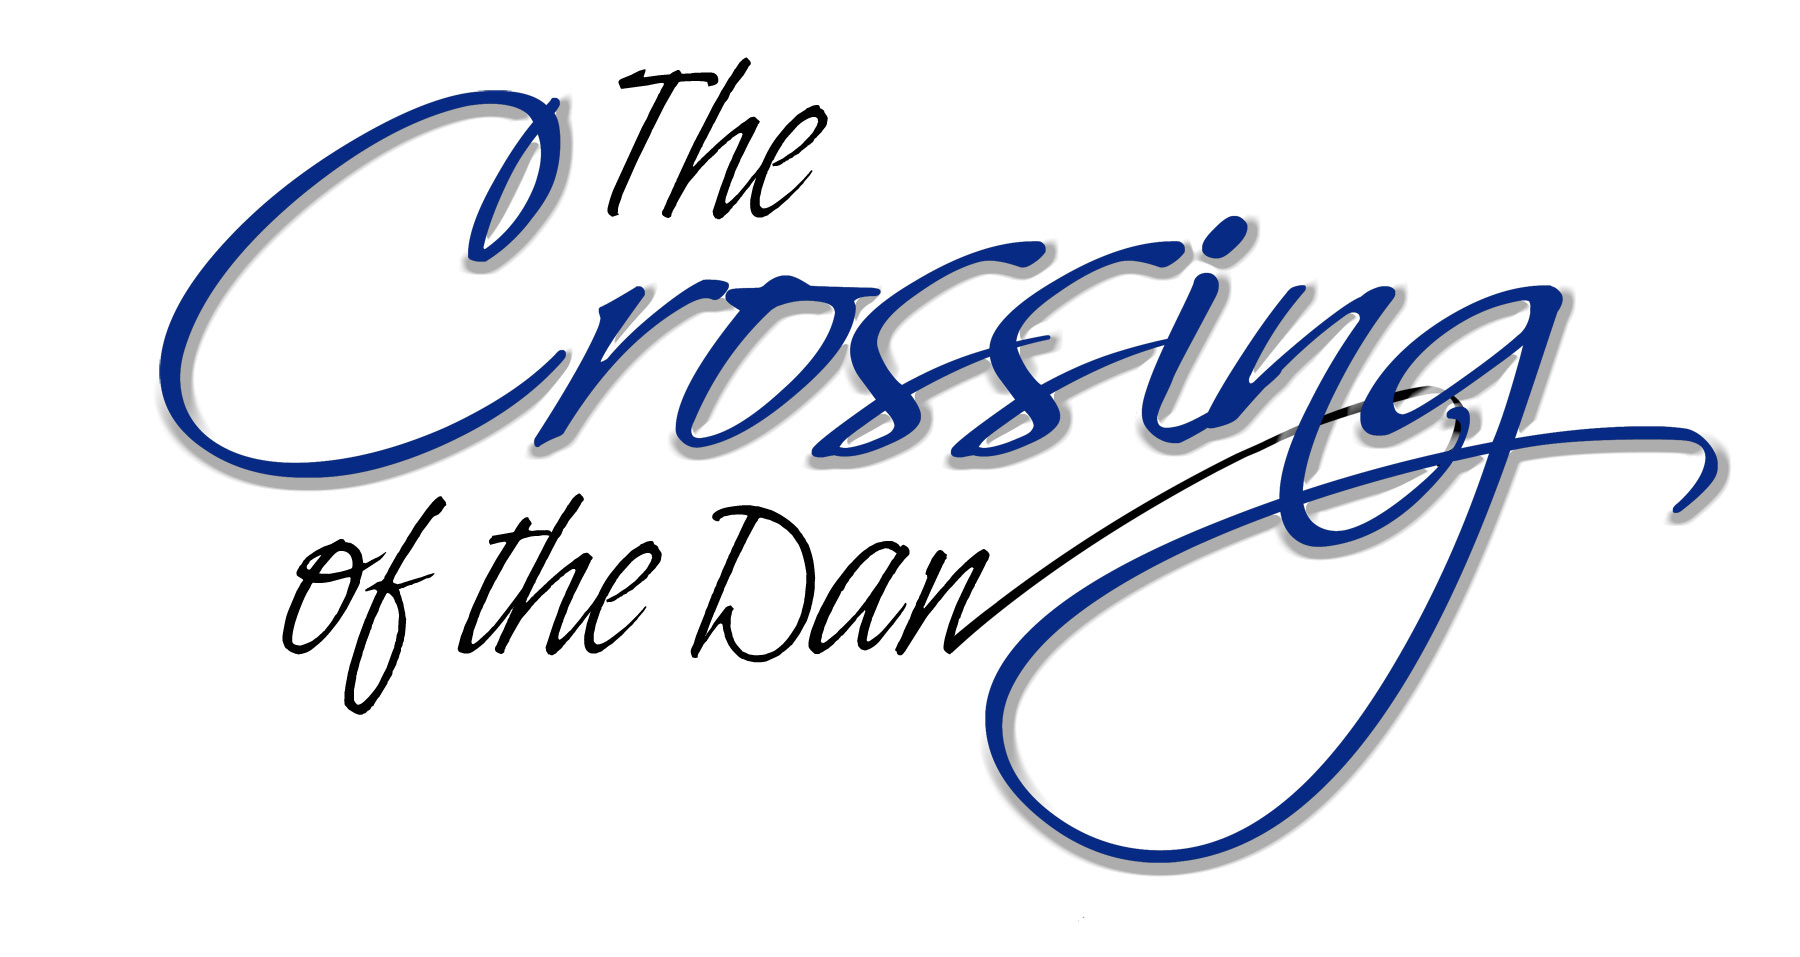 CrossingoftheDanlogo.jpg